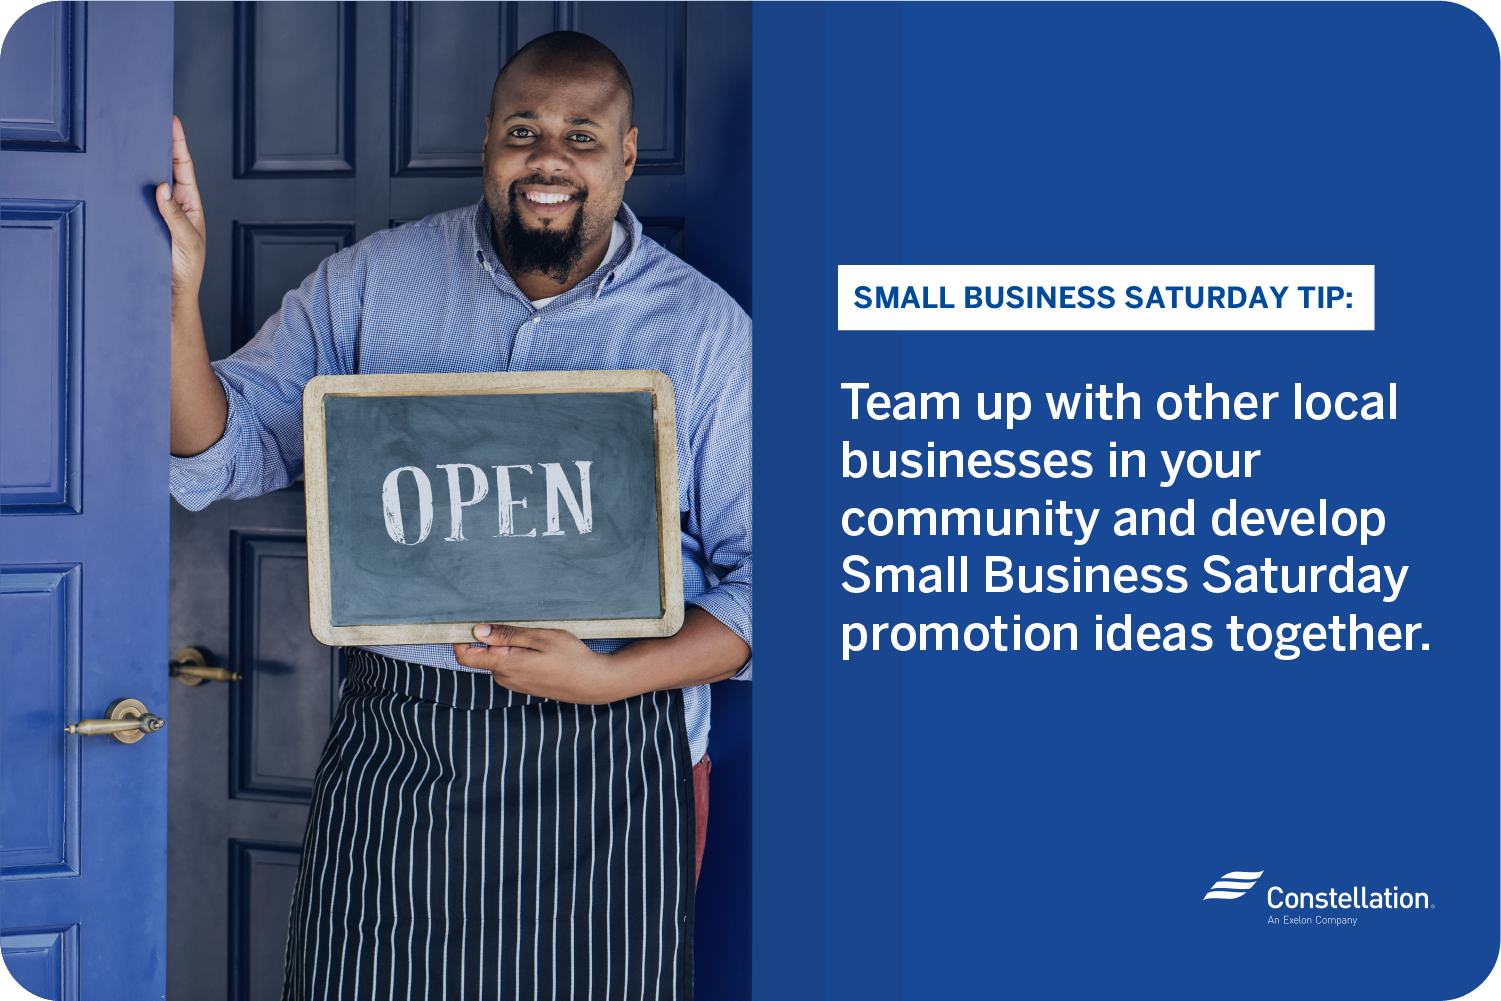 Small business saturday tip promotion idea